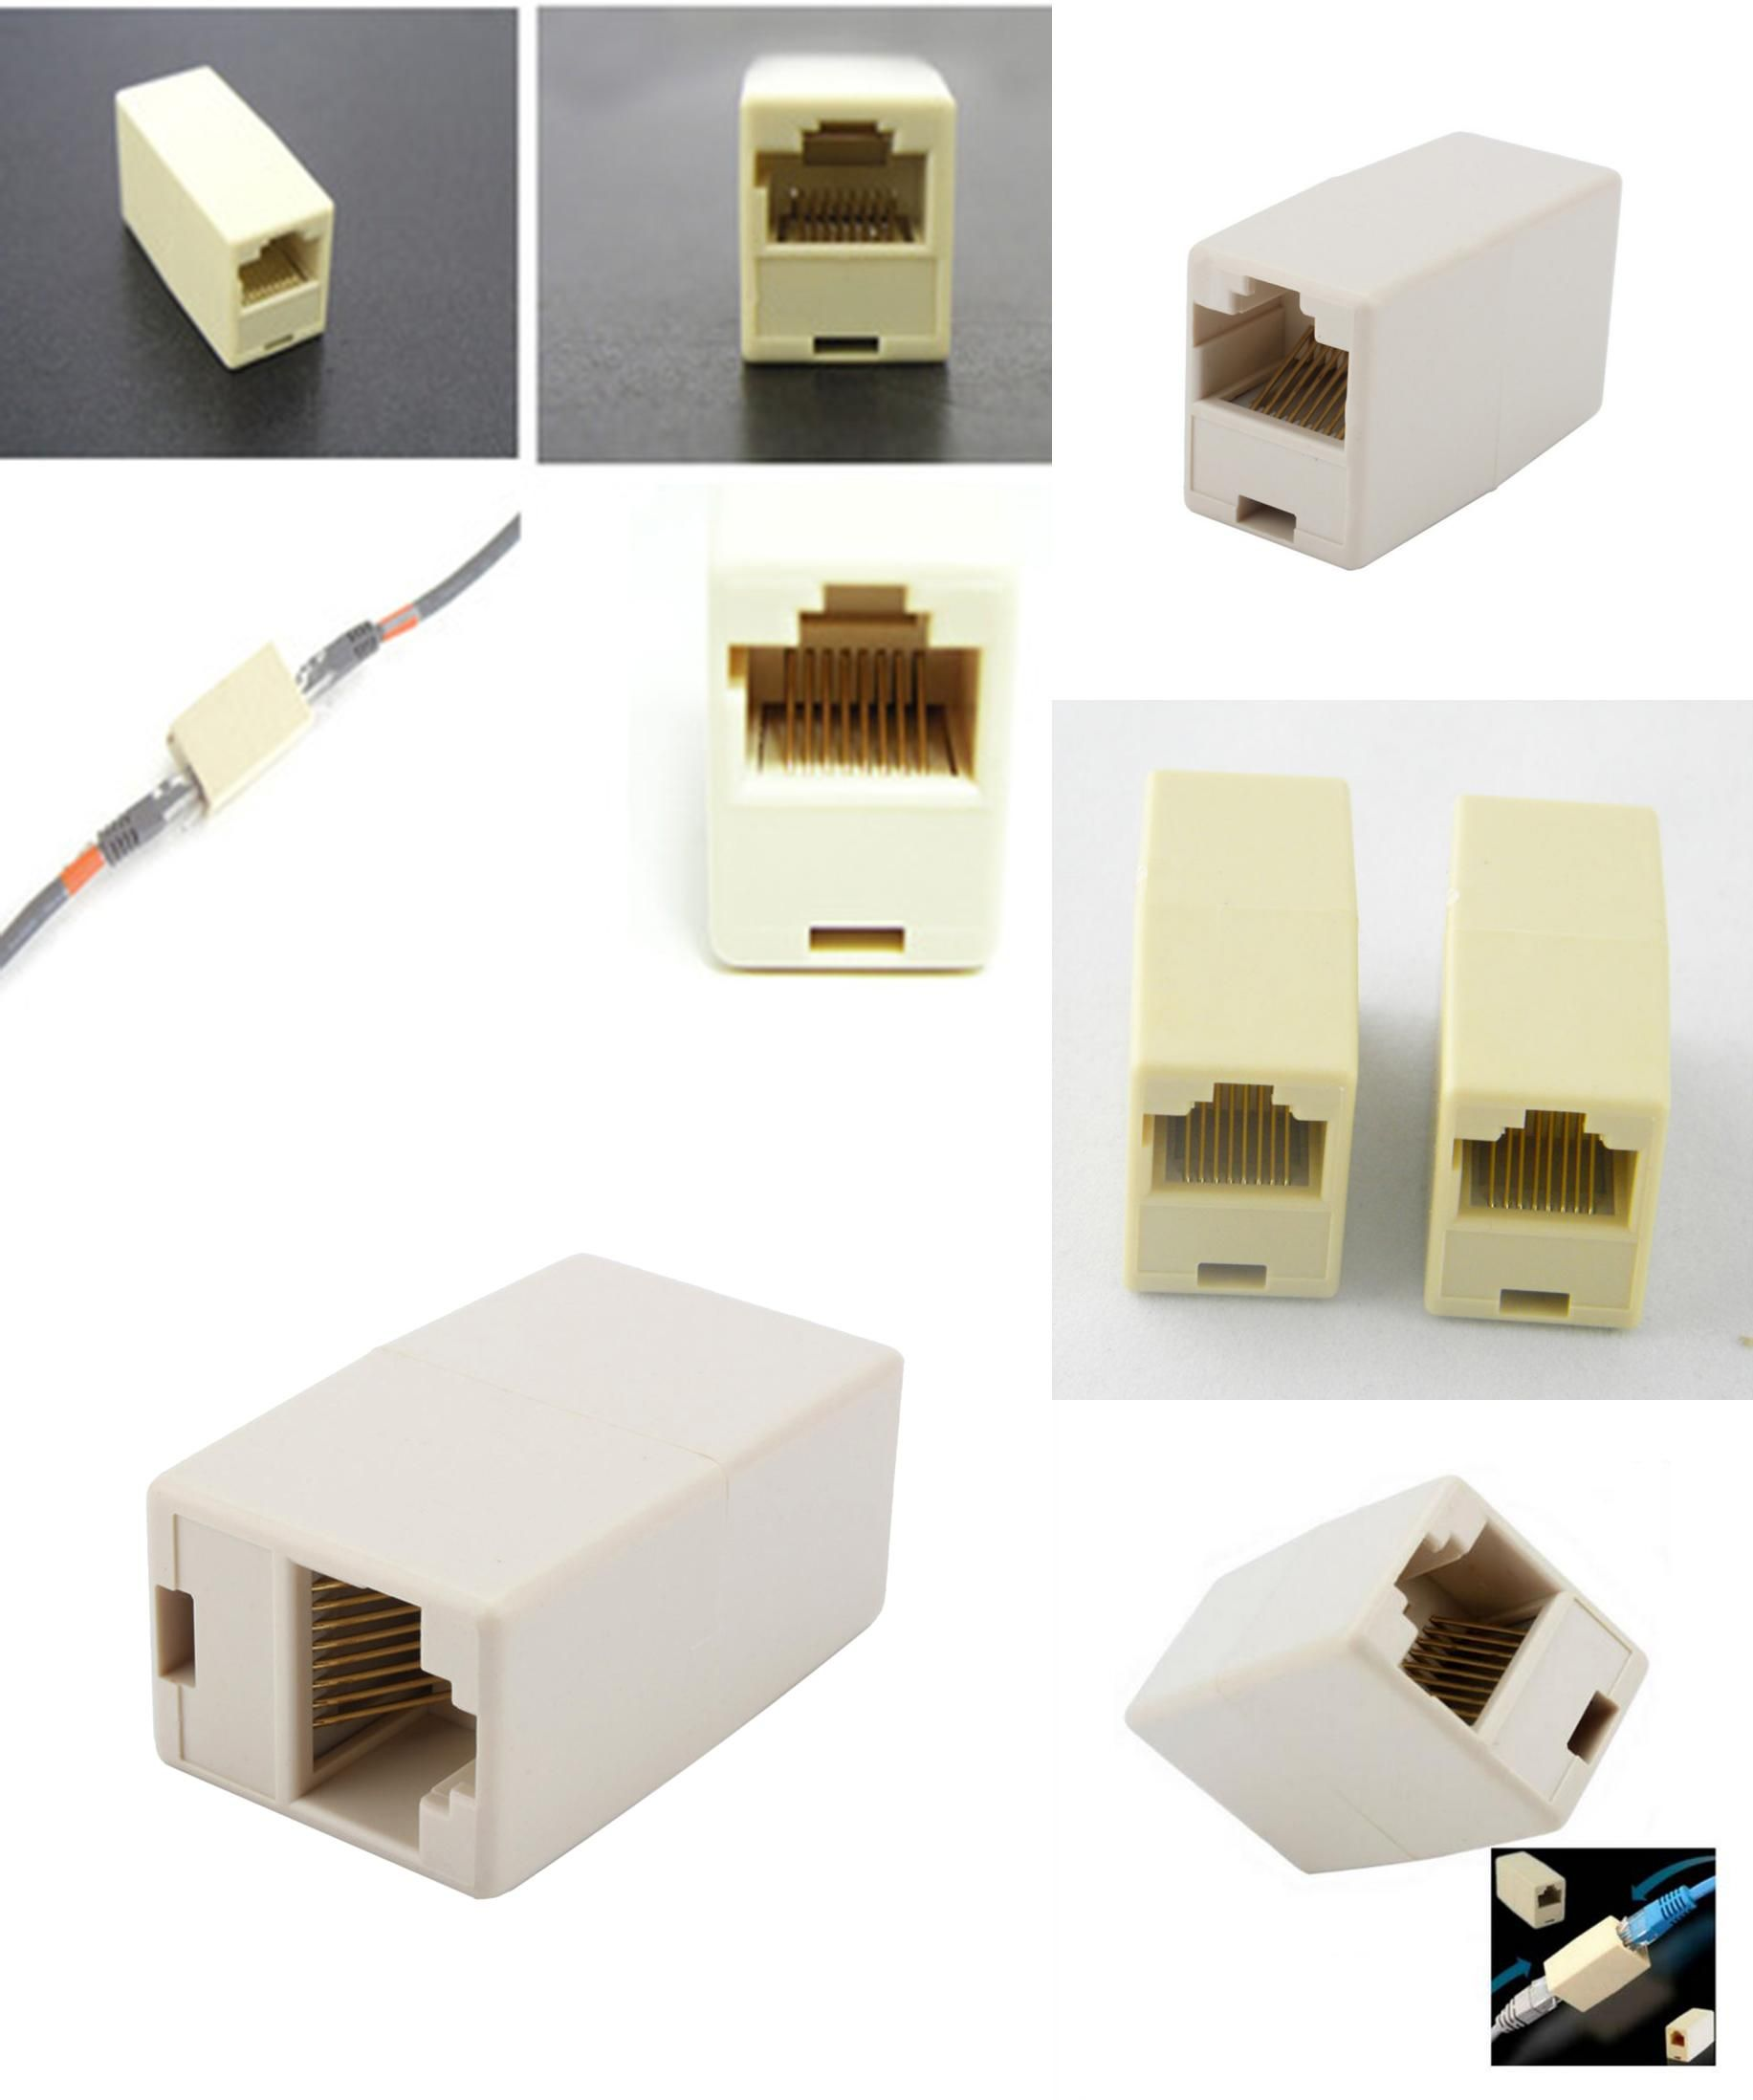 Visit To Buy Cable Joiner Rj45 Adapter Network Ethernet Lan Coupler Connector Extender Plug Advertisement Rj45 Usb Flash Drive Plugs